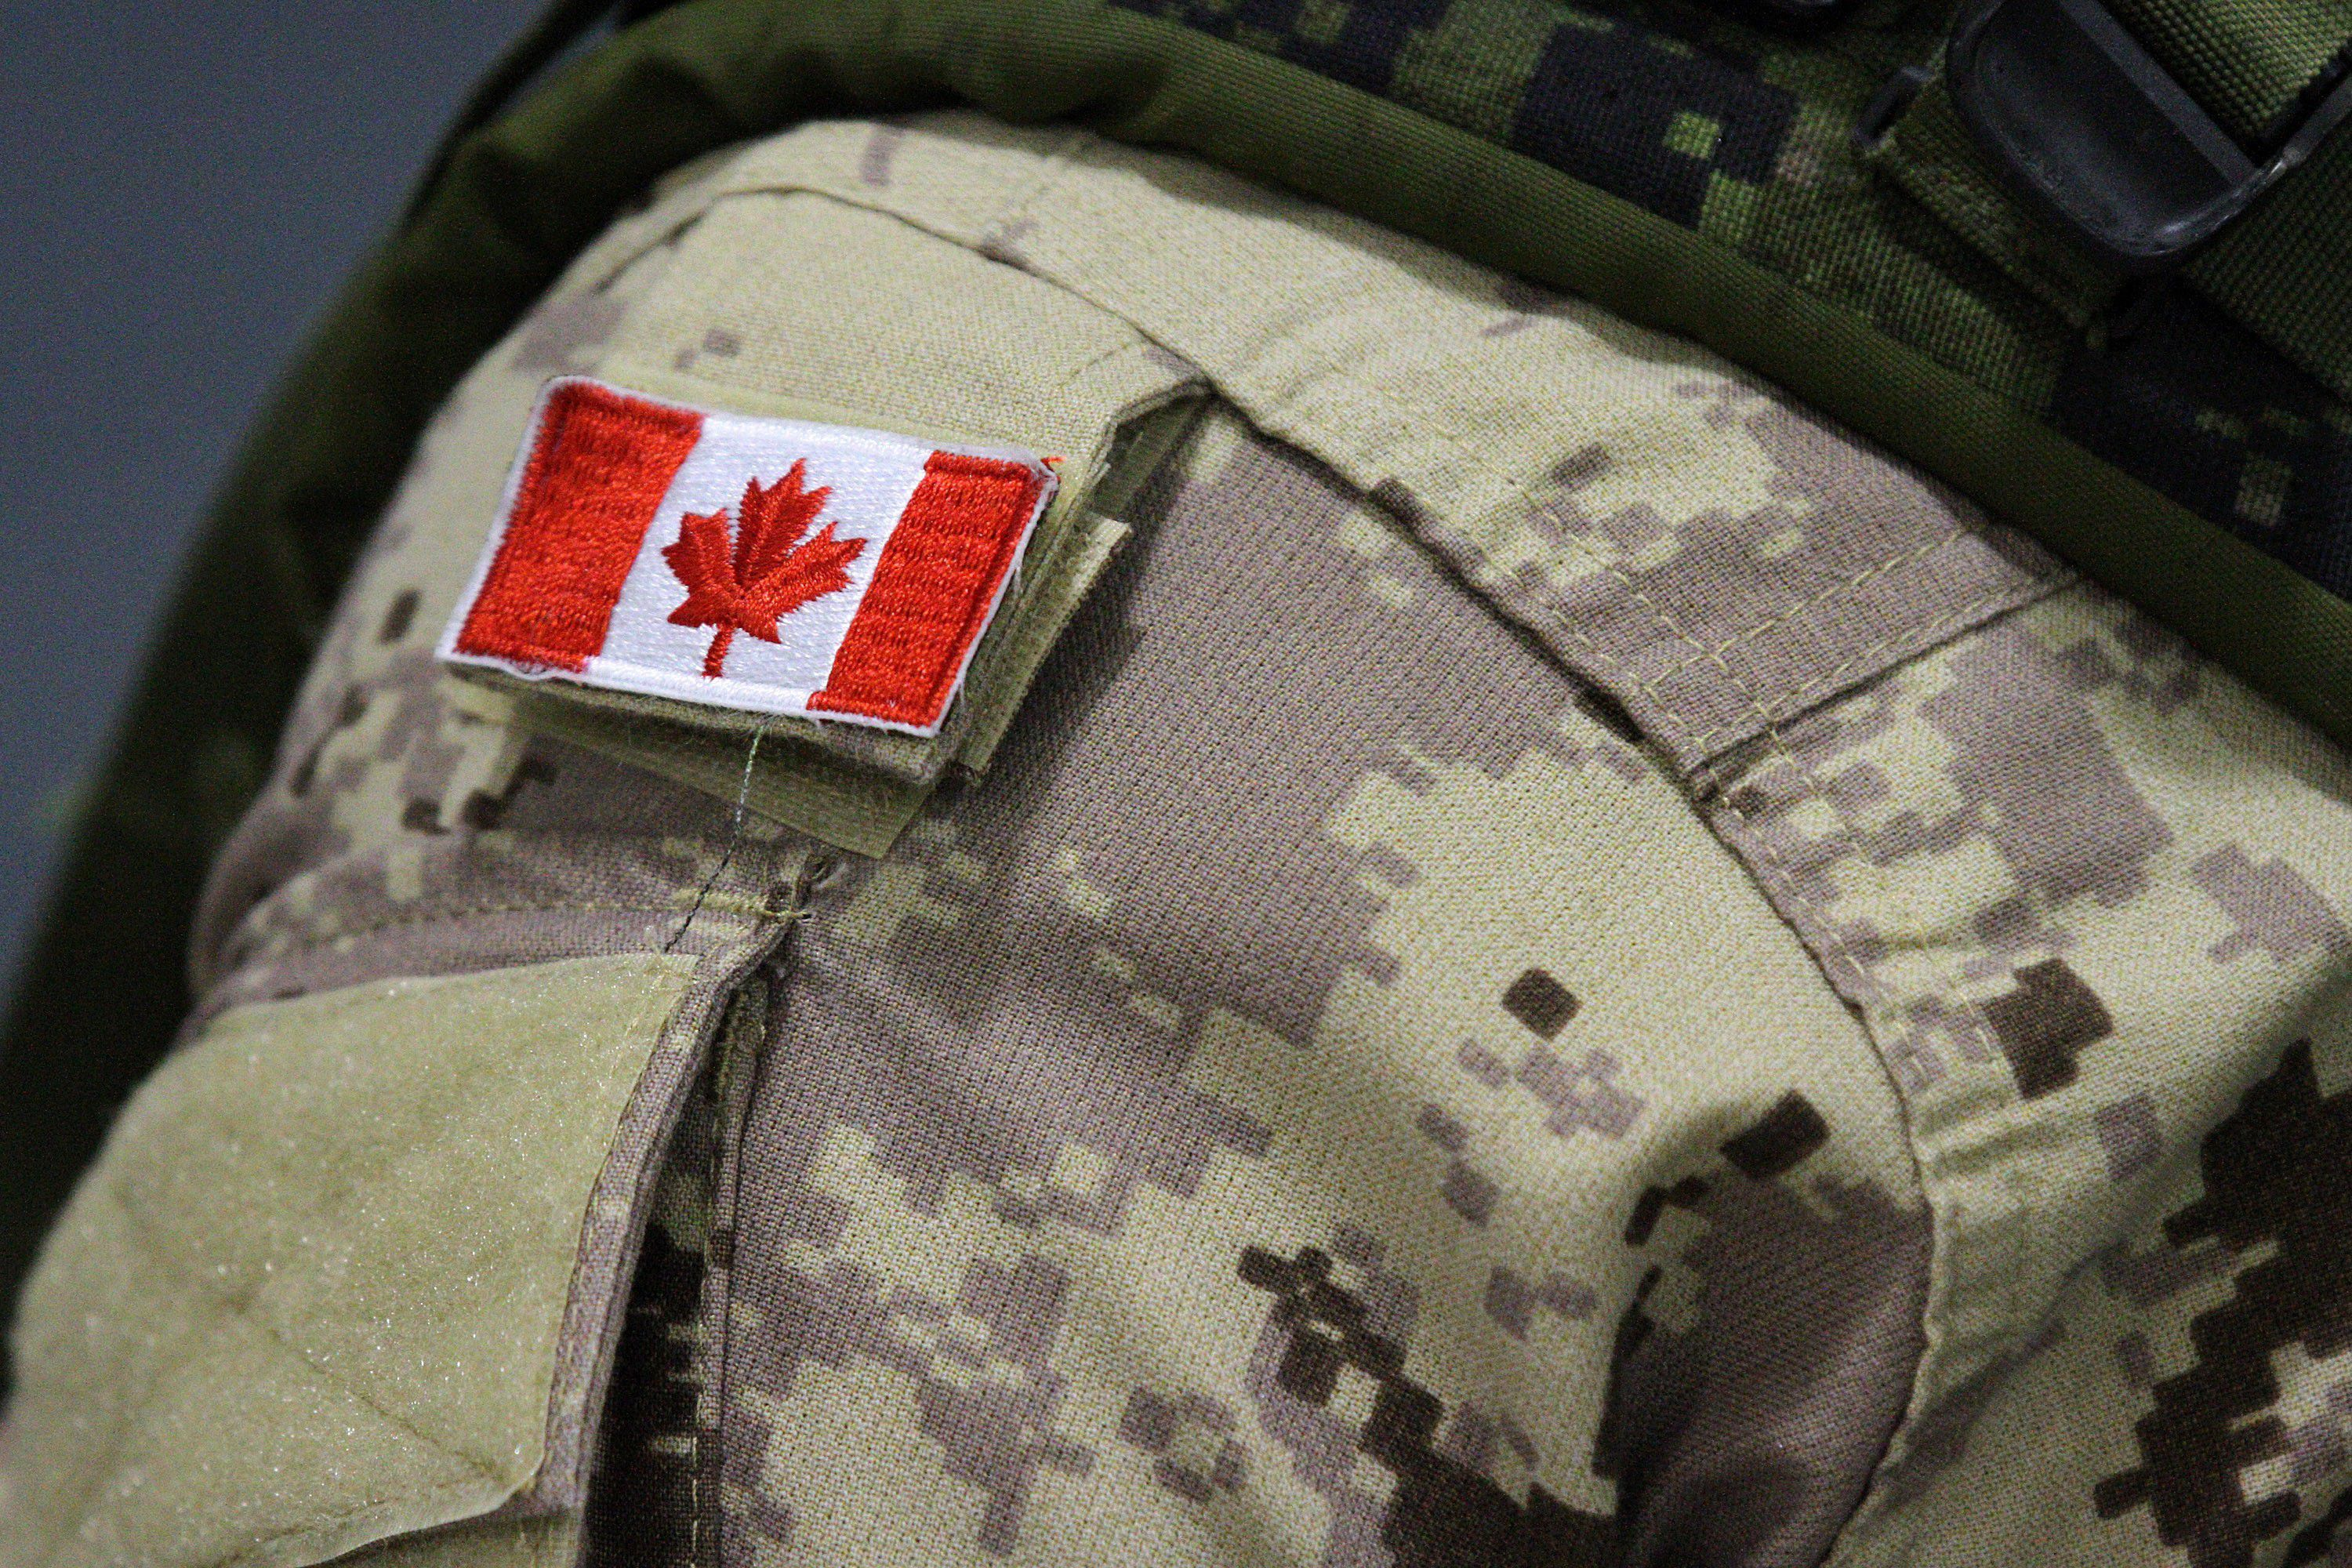 Forces needs more info on perpetrators of sexual misconduct, centre says